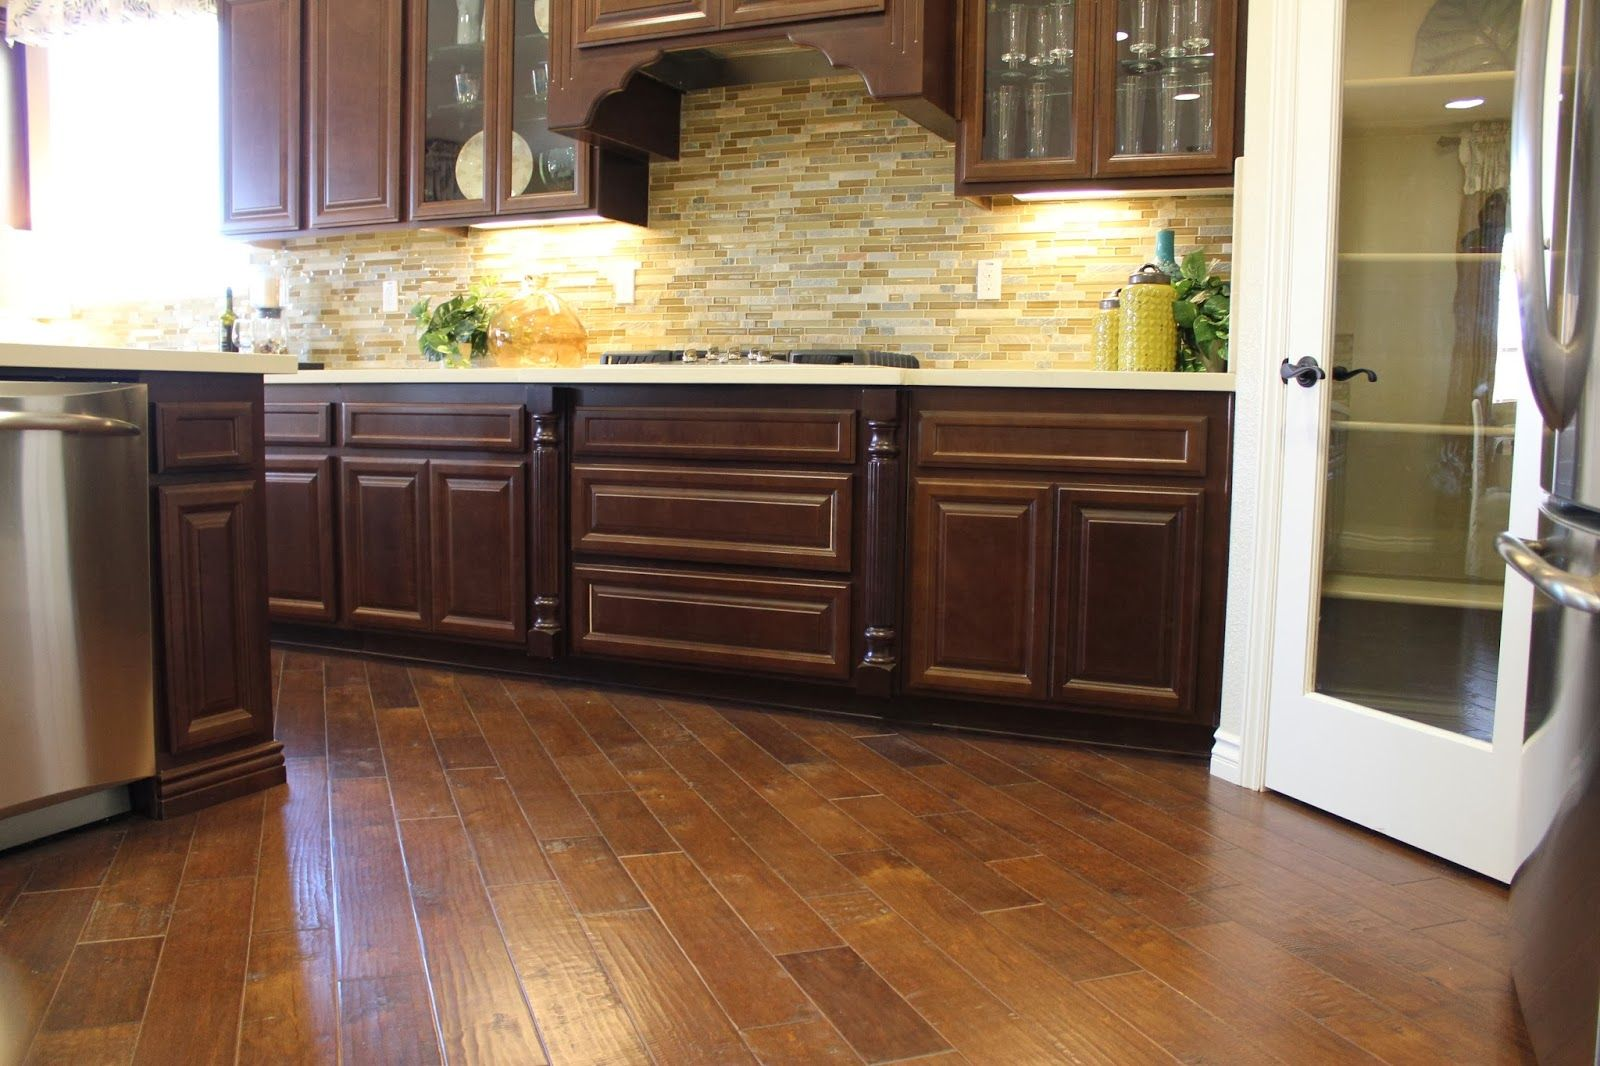 Best Wood Floor For Kitchen maxphotous – Wood Floors in the Kitchen